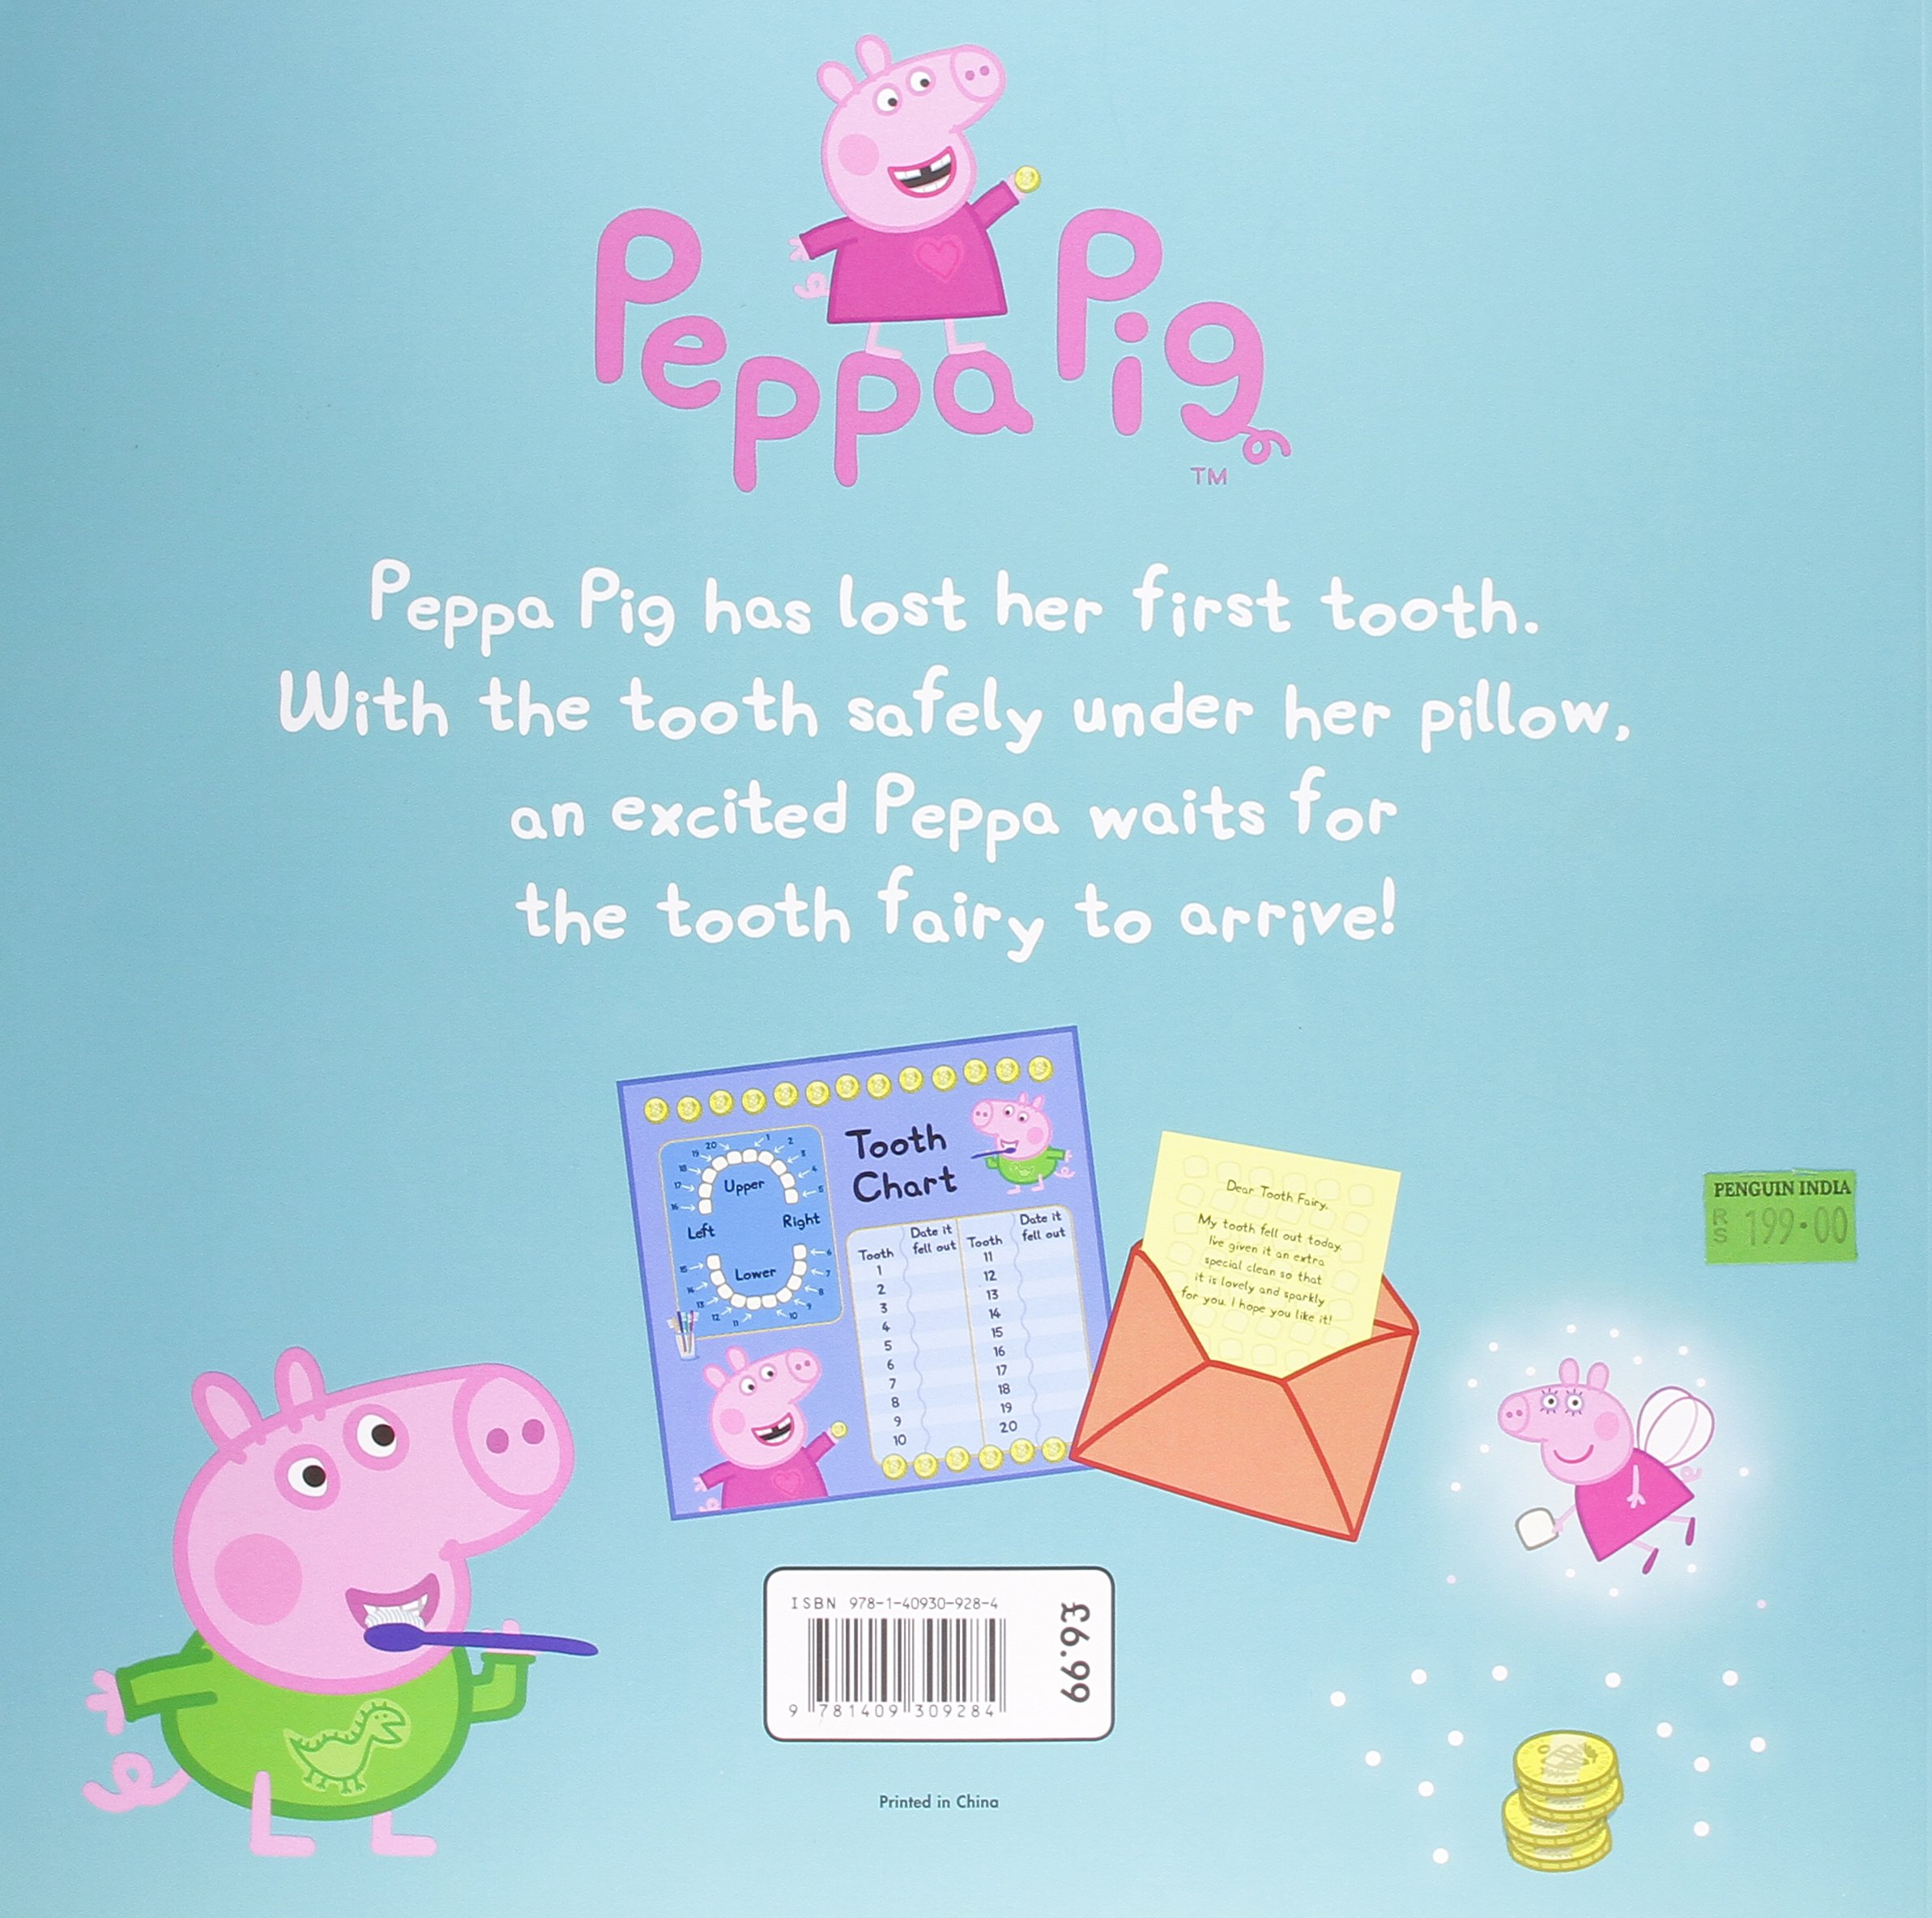 peppa pig peppa and the tooth fairy amazon co uk collectif